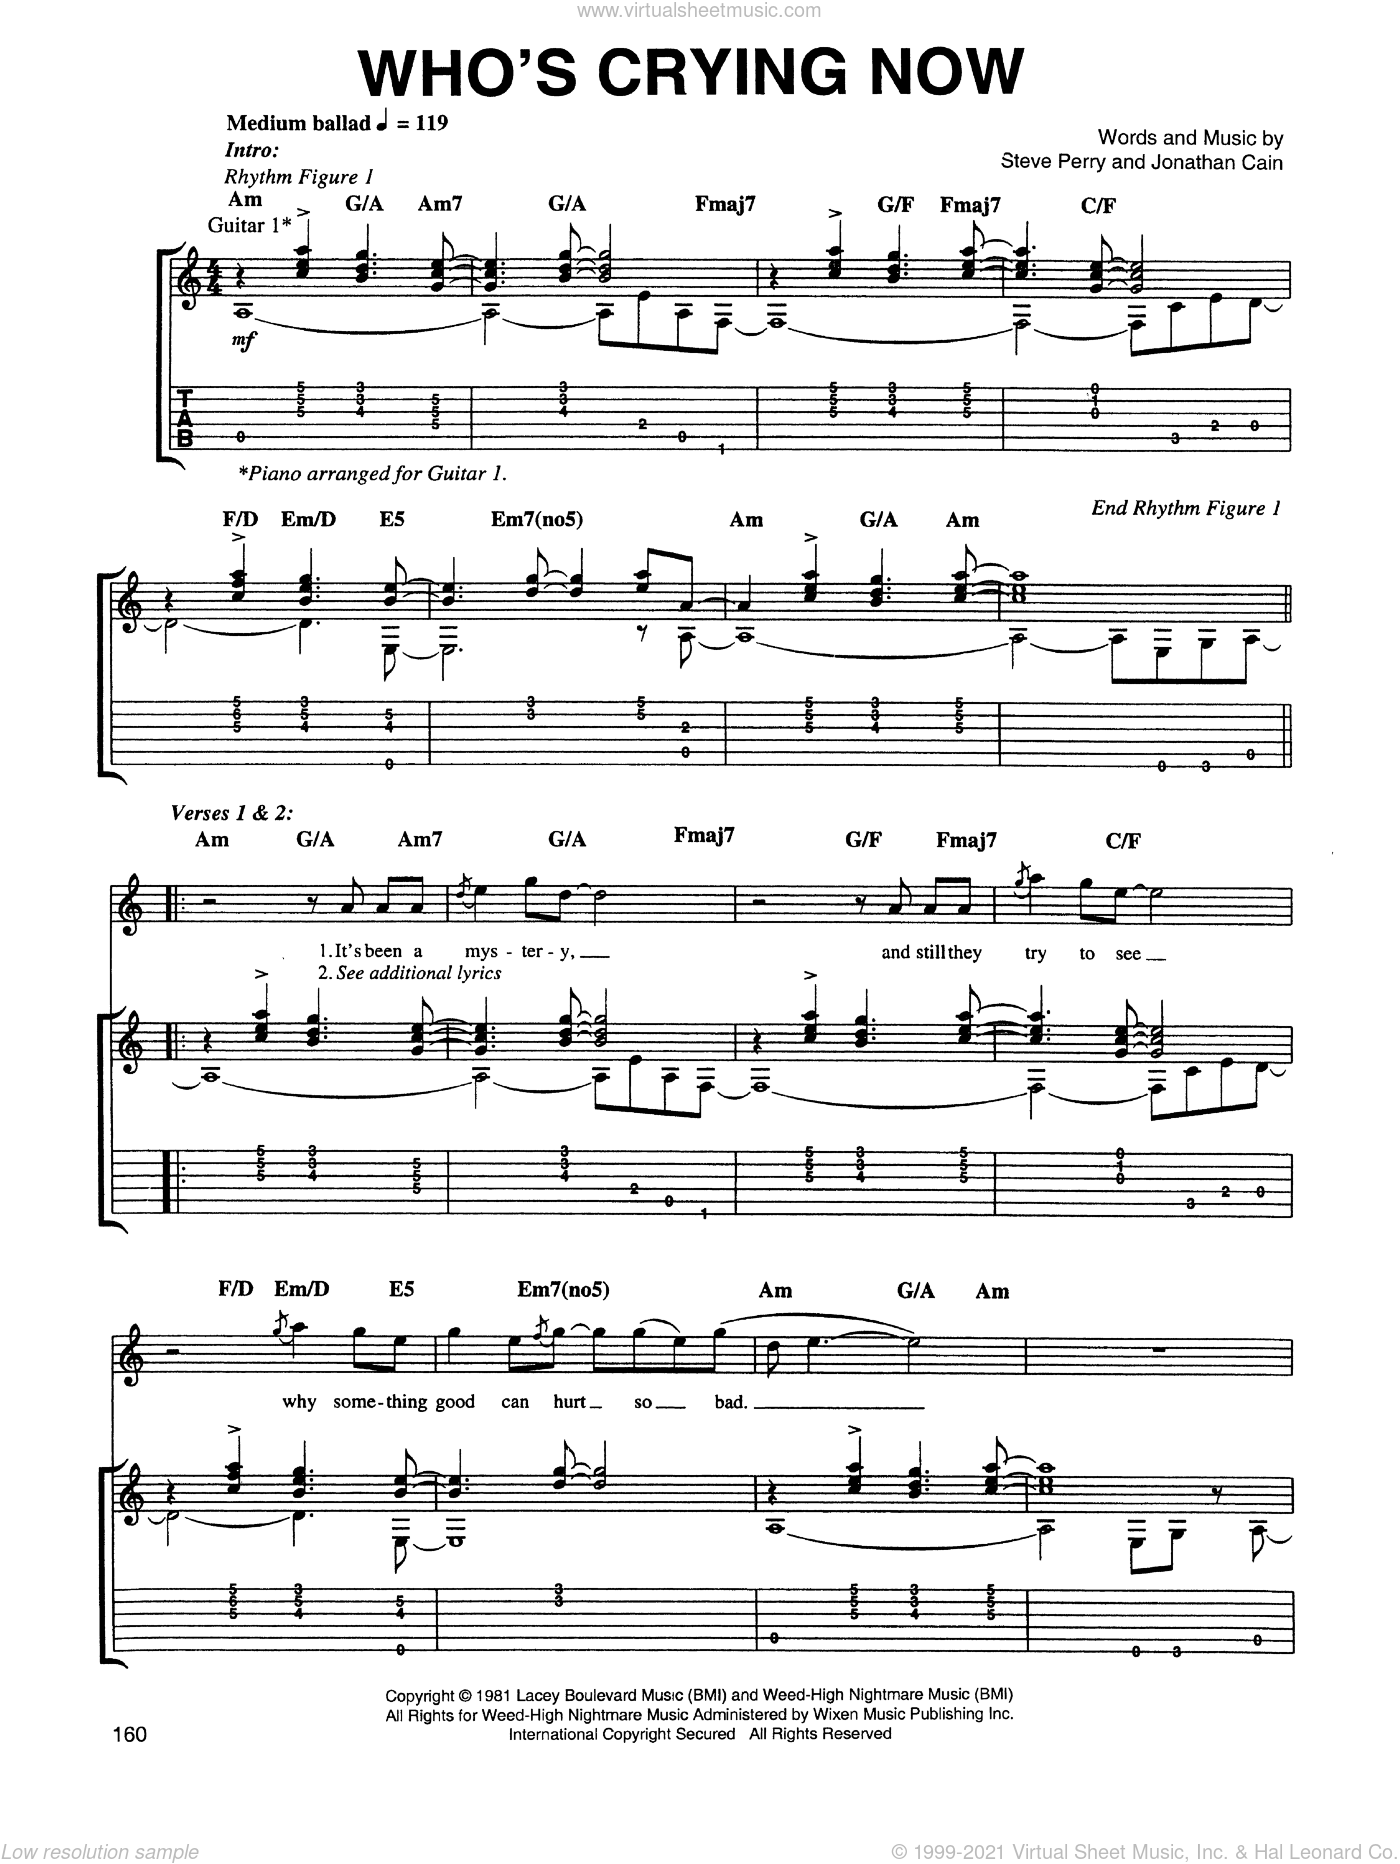 Who's Crying Now sheet music for guitar (tablature) by Steve Perry, Jonathan Cain and Journey. Score Image Preview.